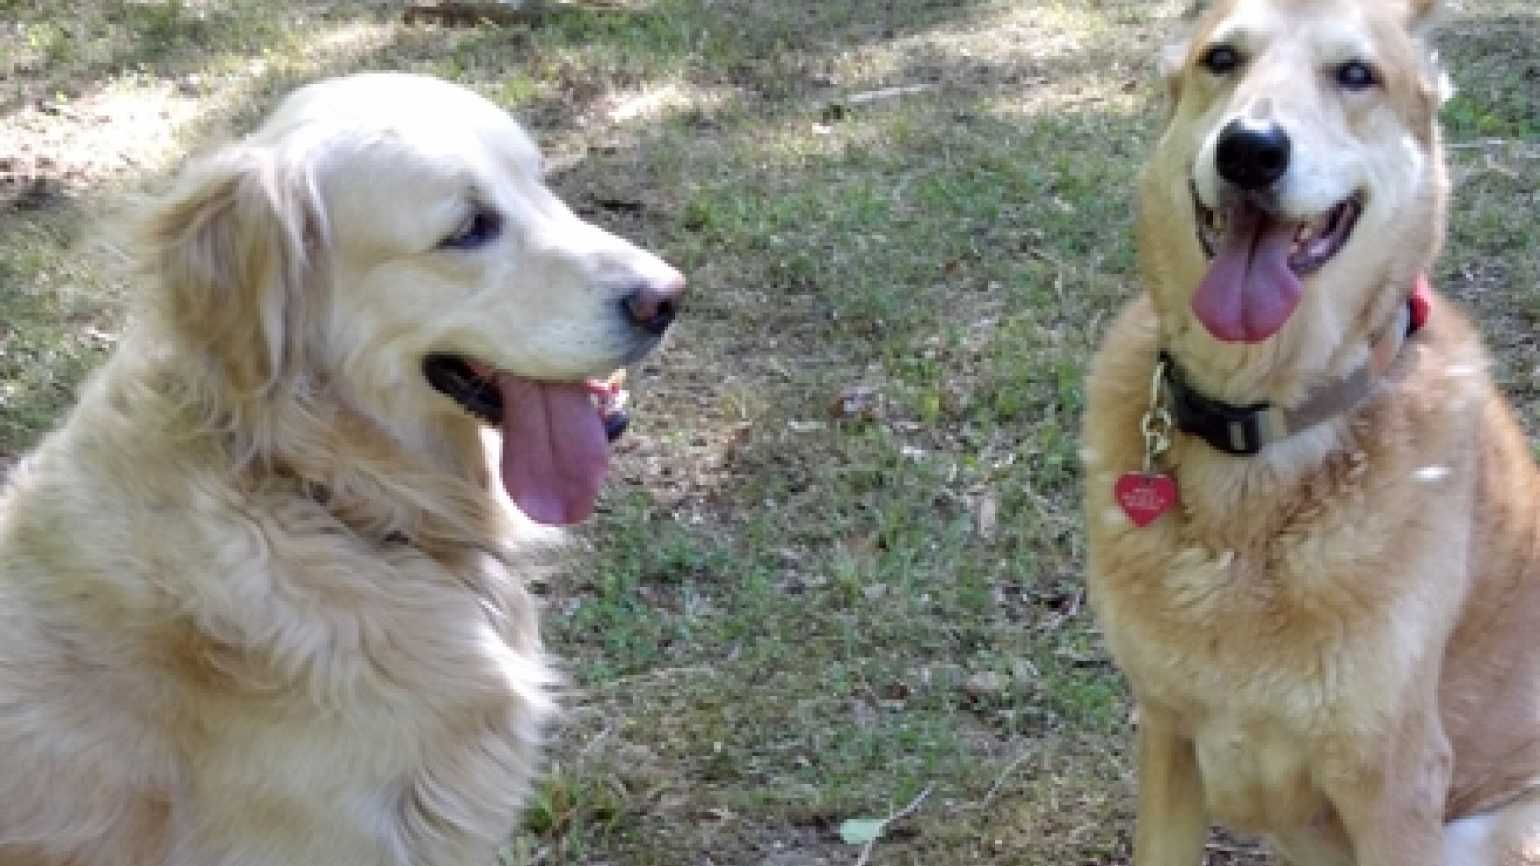 Two dog BFFs, Winky and Millie, in the woods together